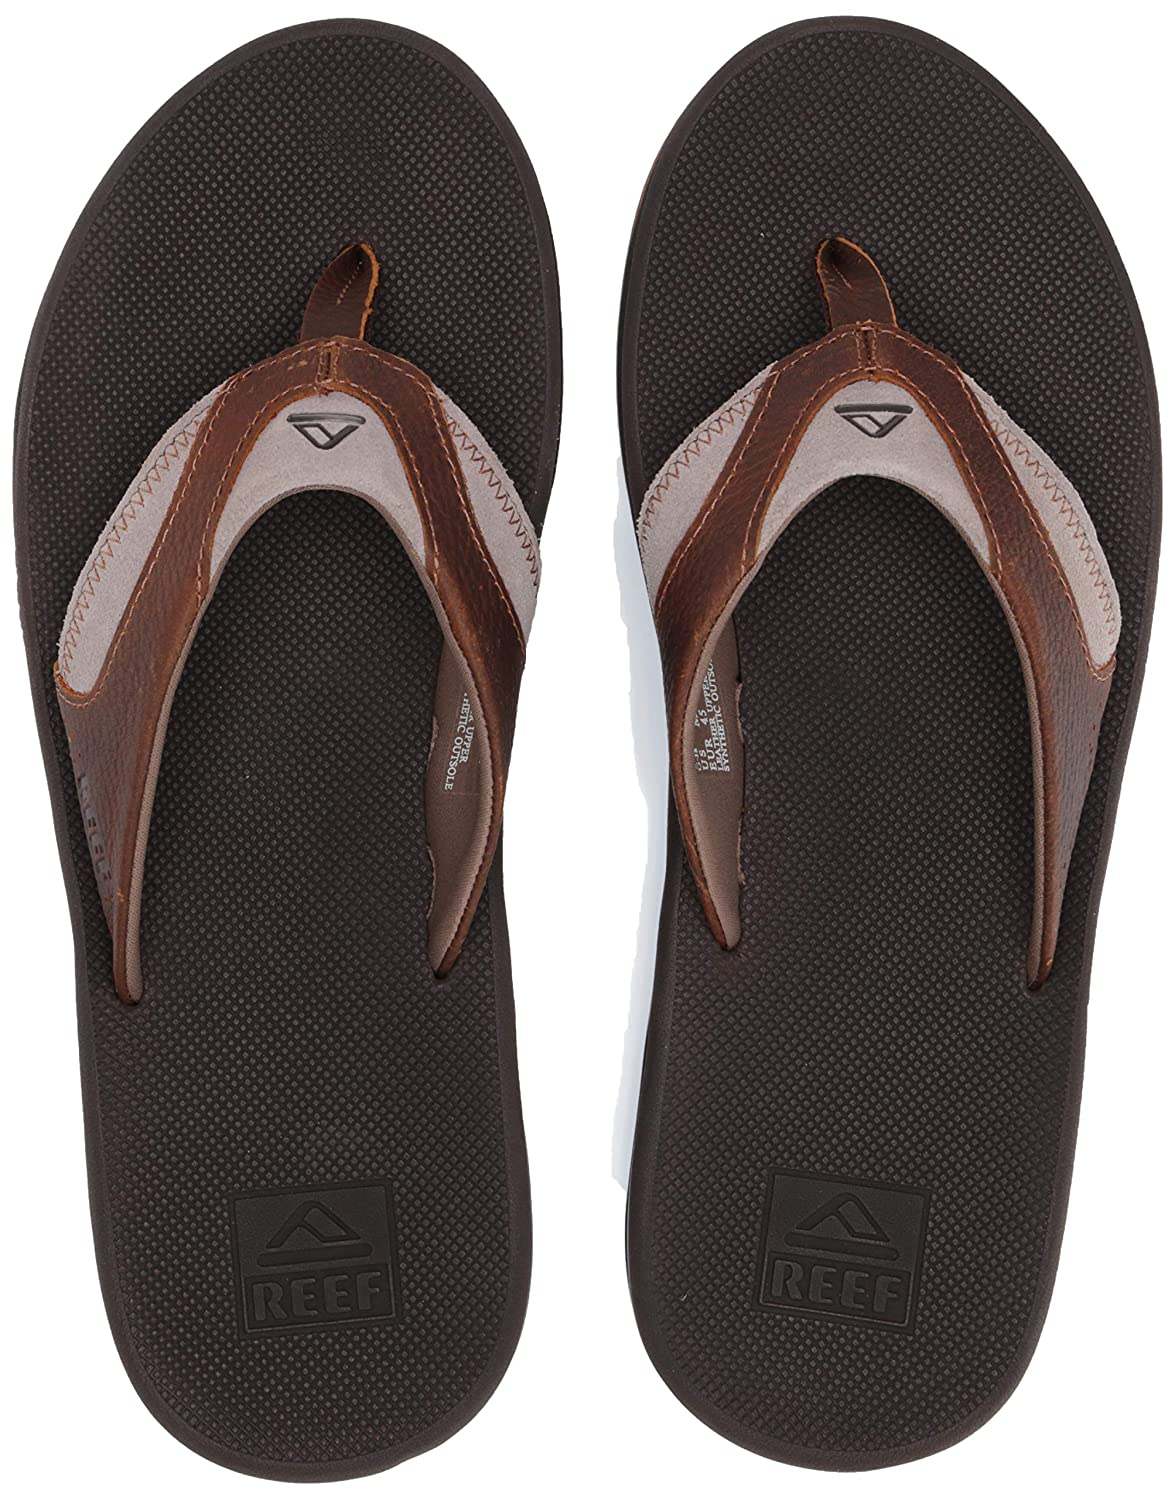 Reef Leather Fanning, Chanclas para Hombre, Marrón (Bro/Brown 4 Br4), 43 EU